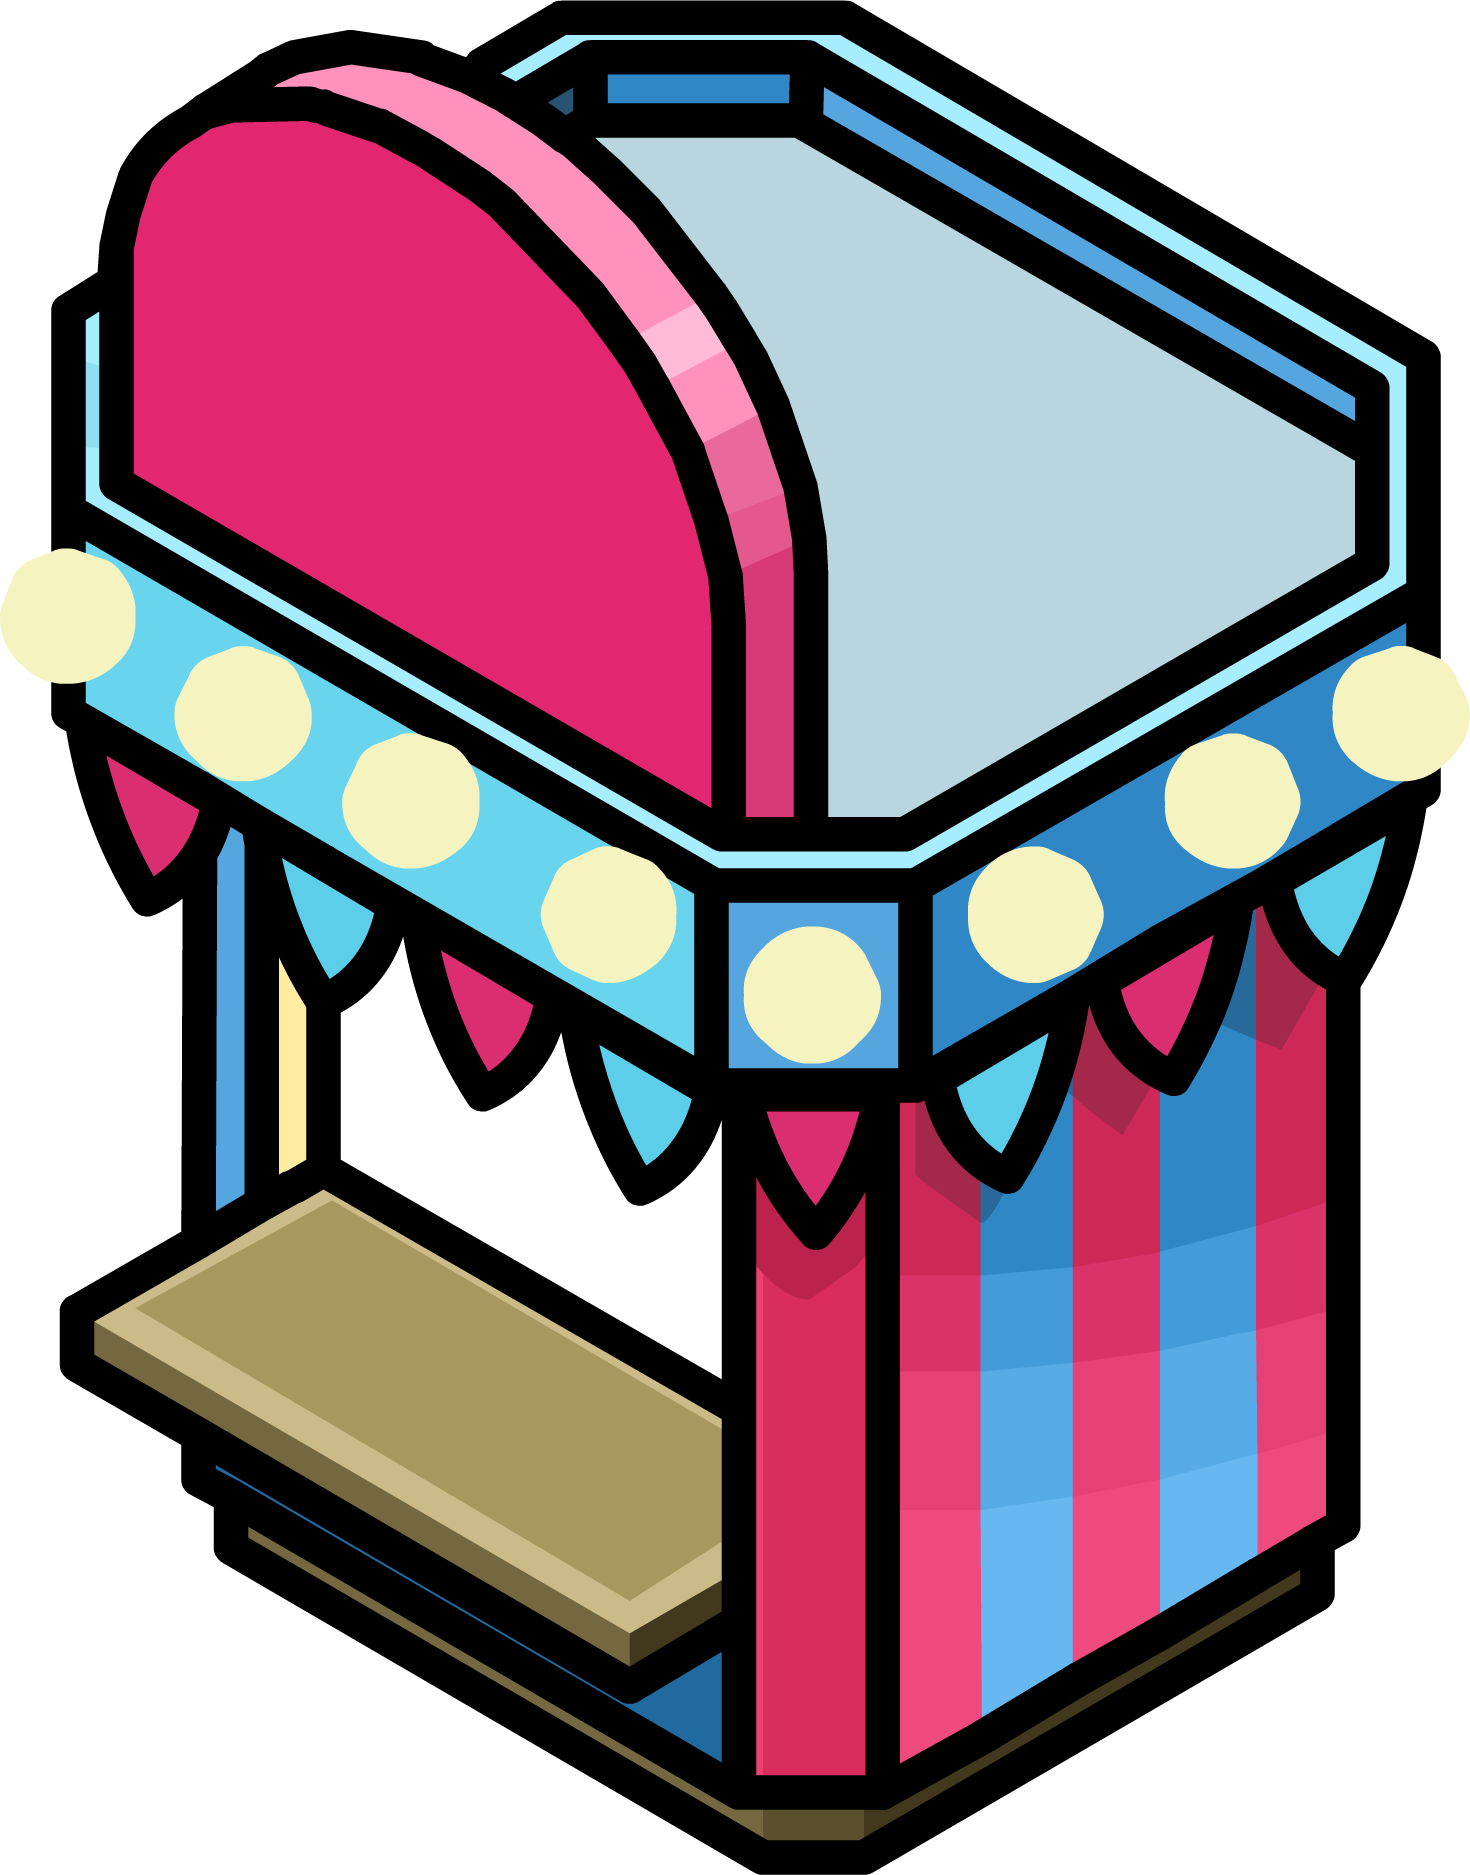 Image Balloon Pop Booth Icon Png Club Penguin Wiki